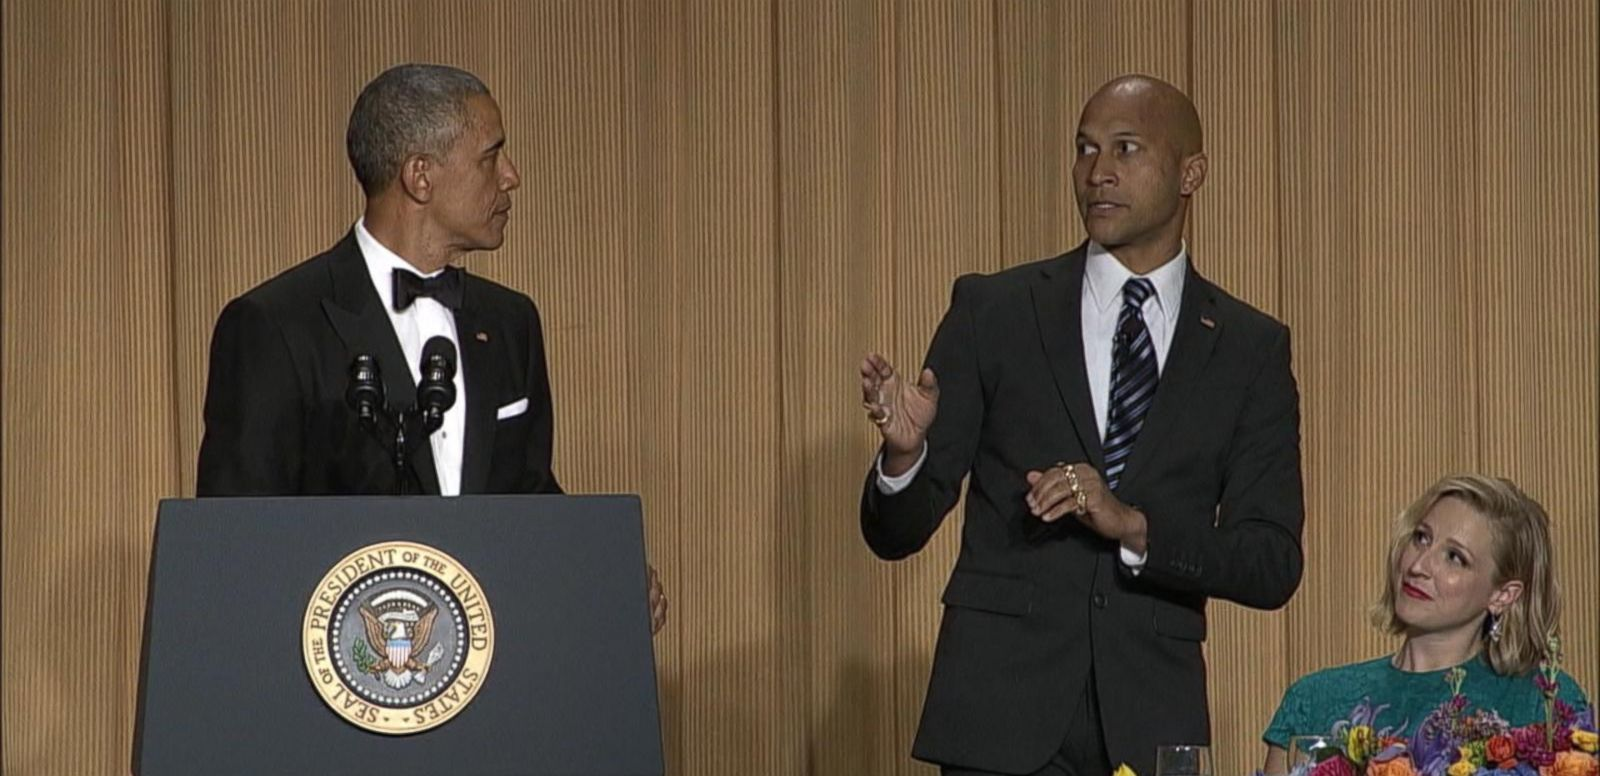 VIDEO: White House Correspondents' Dinner Punchlines Pack a Punch